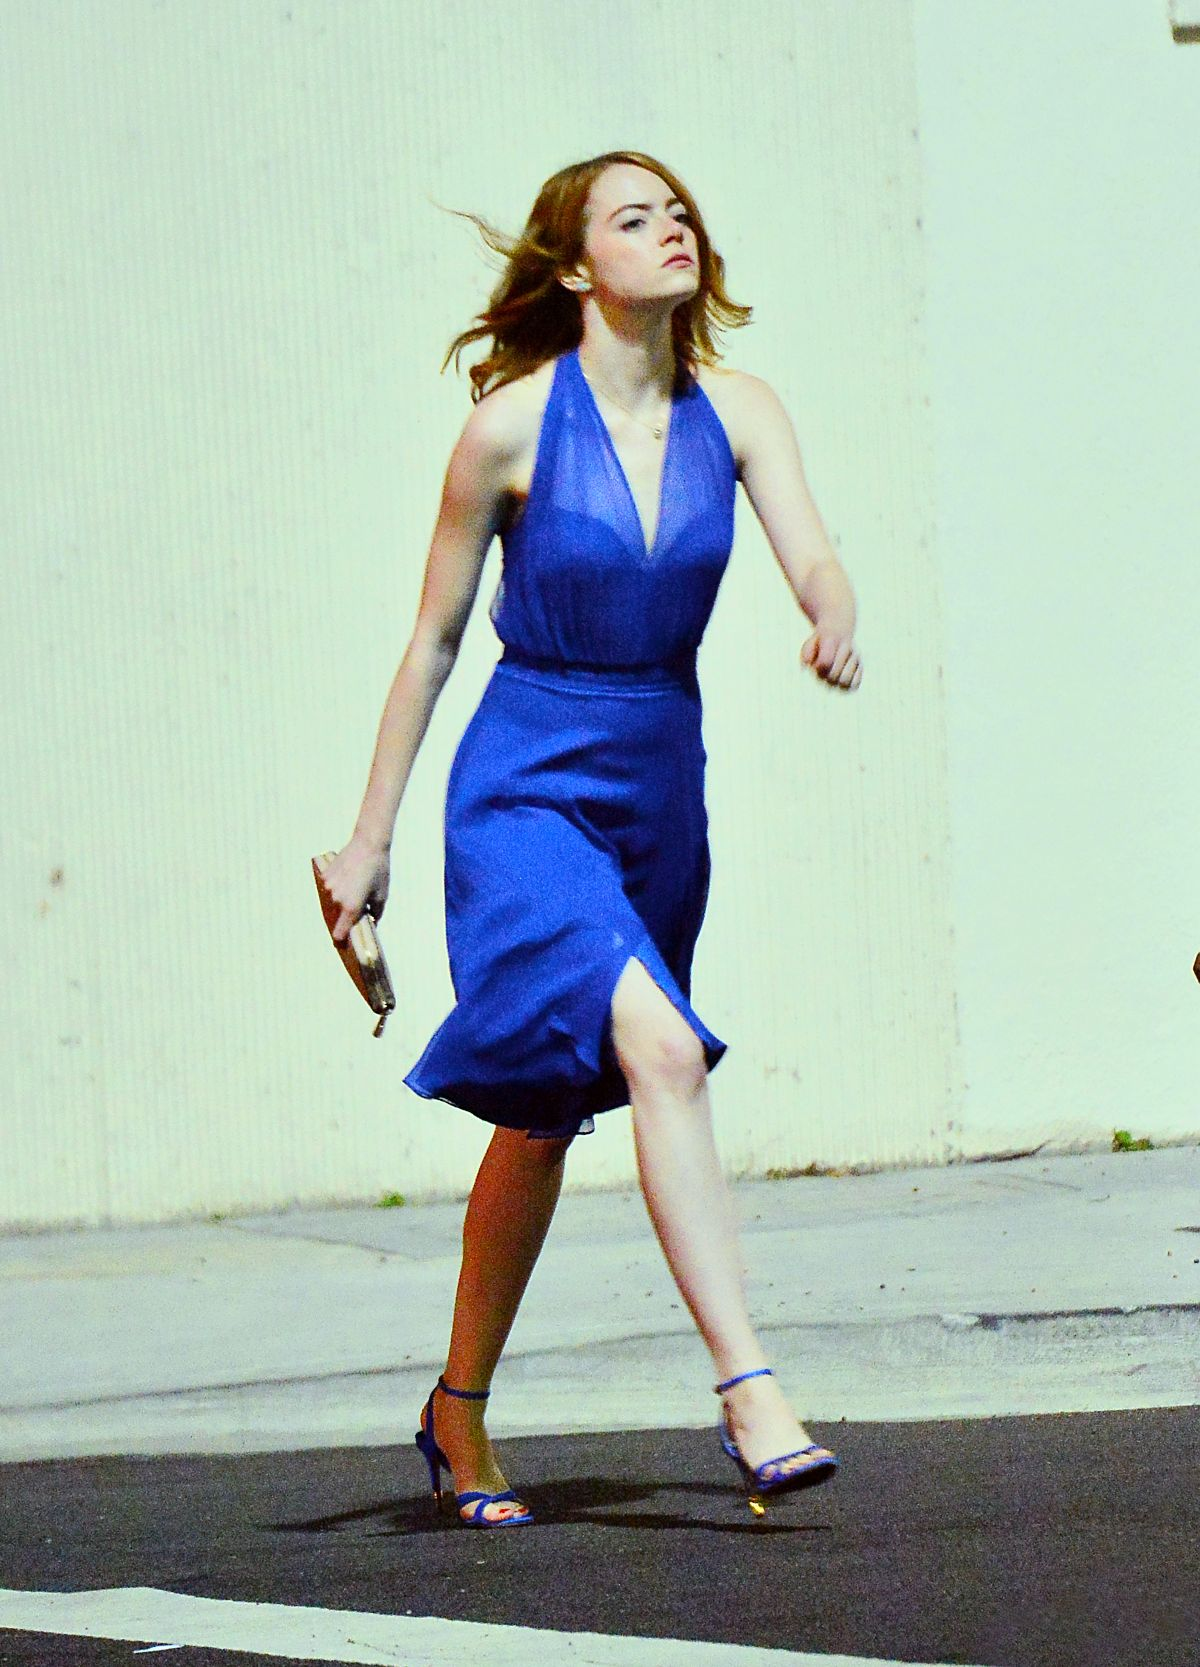 http://www.hawtcelebs.com/wp-content/uploads/2015/10/emma-stone-on-the-set-of-la-la-land-in-hollywood-10-23-2015_33.jpg